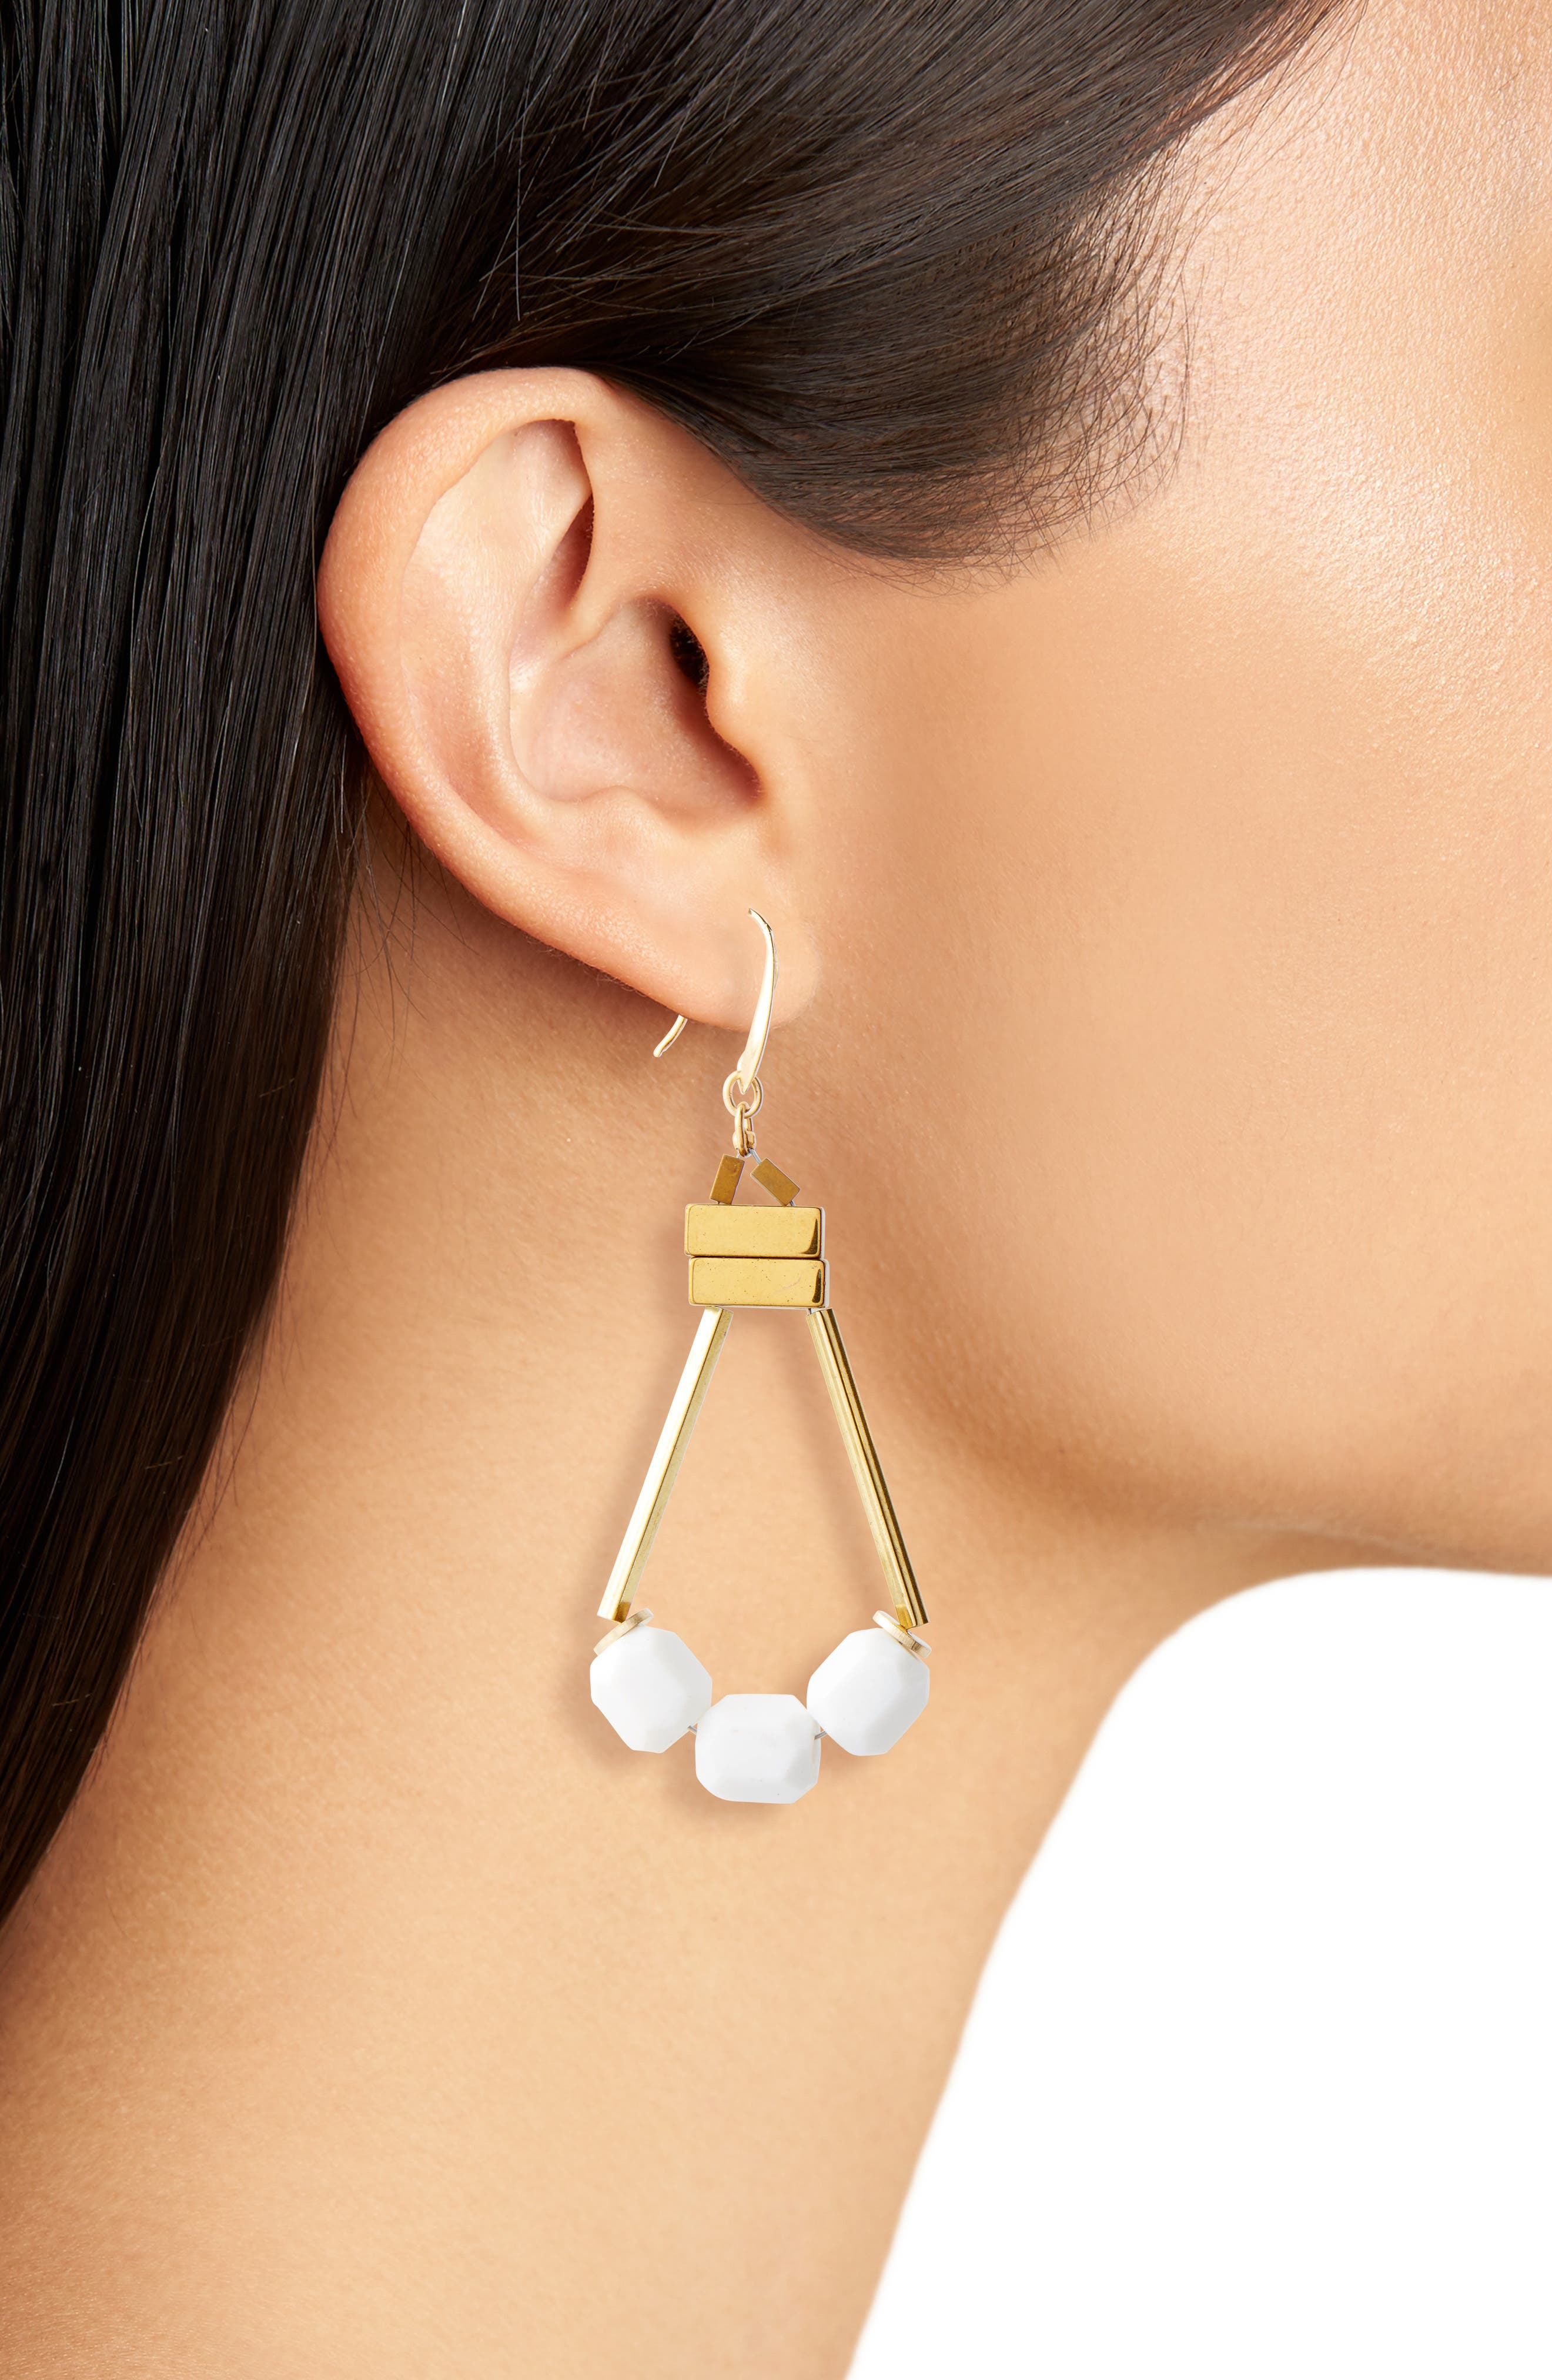 Rylee Beaded Drop Earrings,                             Alternate thumbnail 2, color,                             White/ Gold